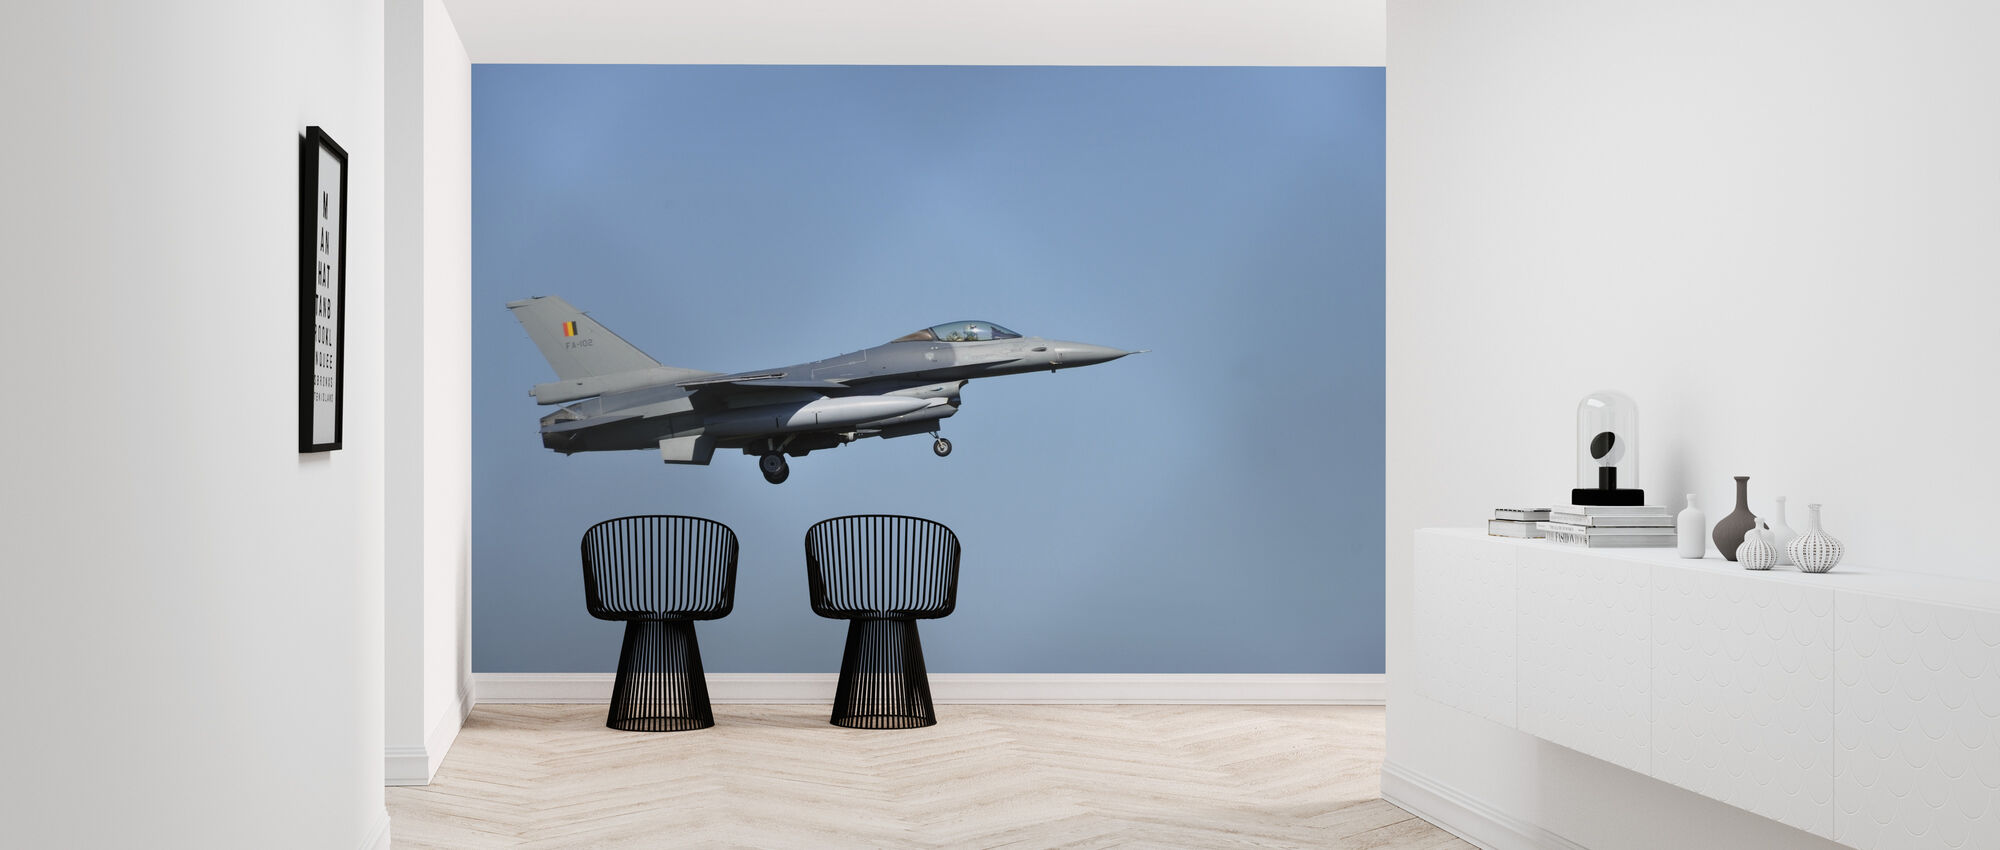 F16 Fighter Jet - Wallpaper - Hallway